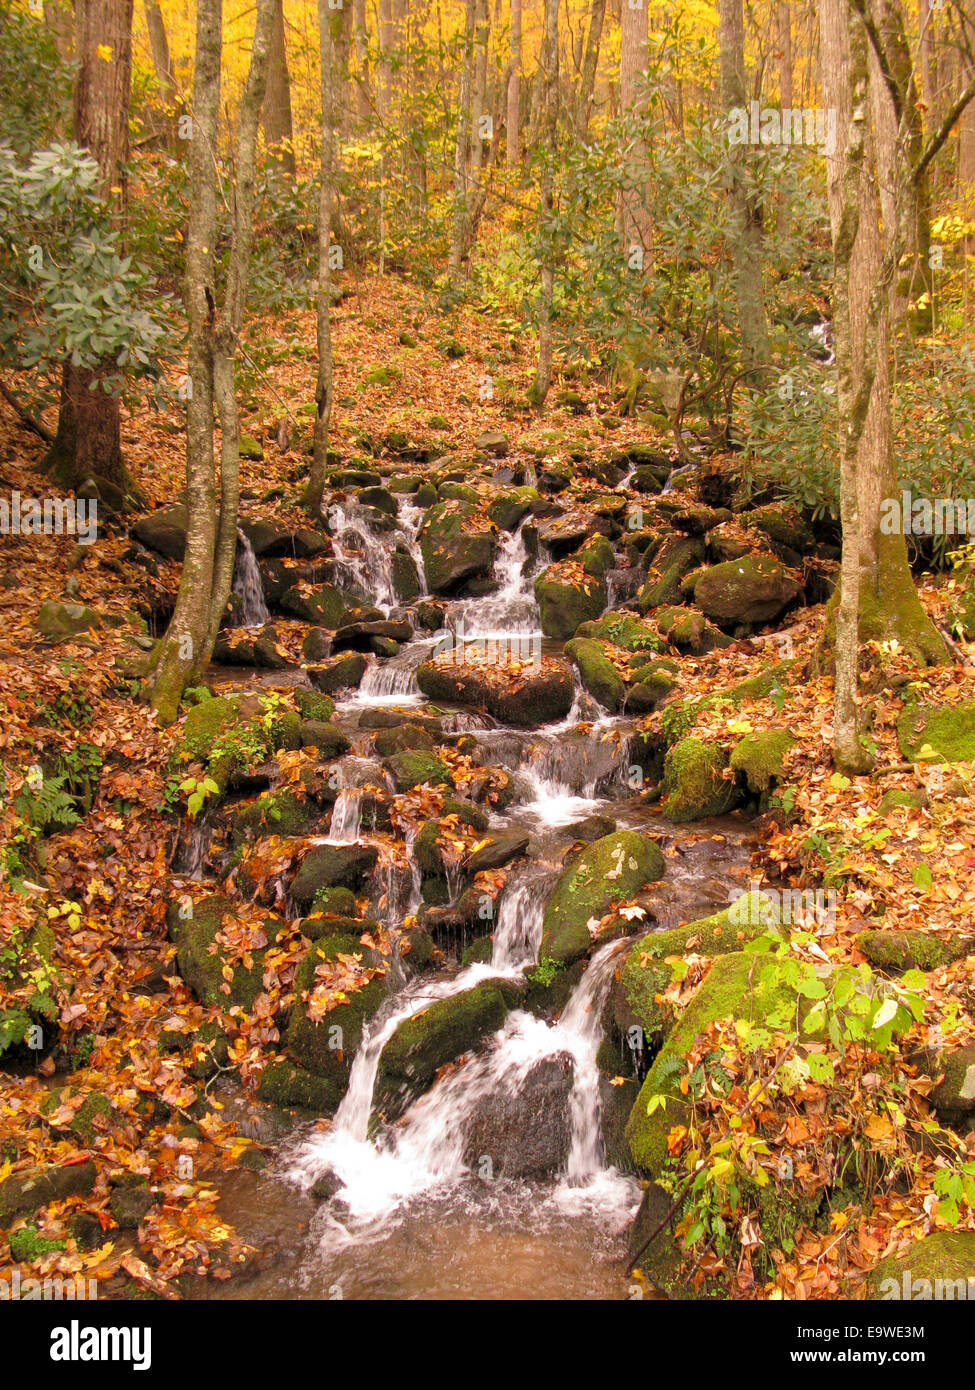 Stream during autumn in Great Smoky Mountains National Park. - Stock Image